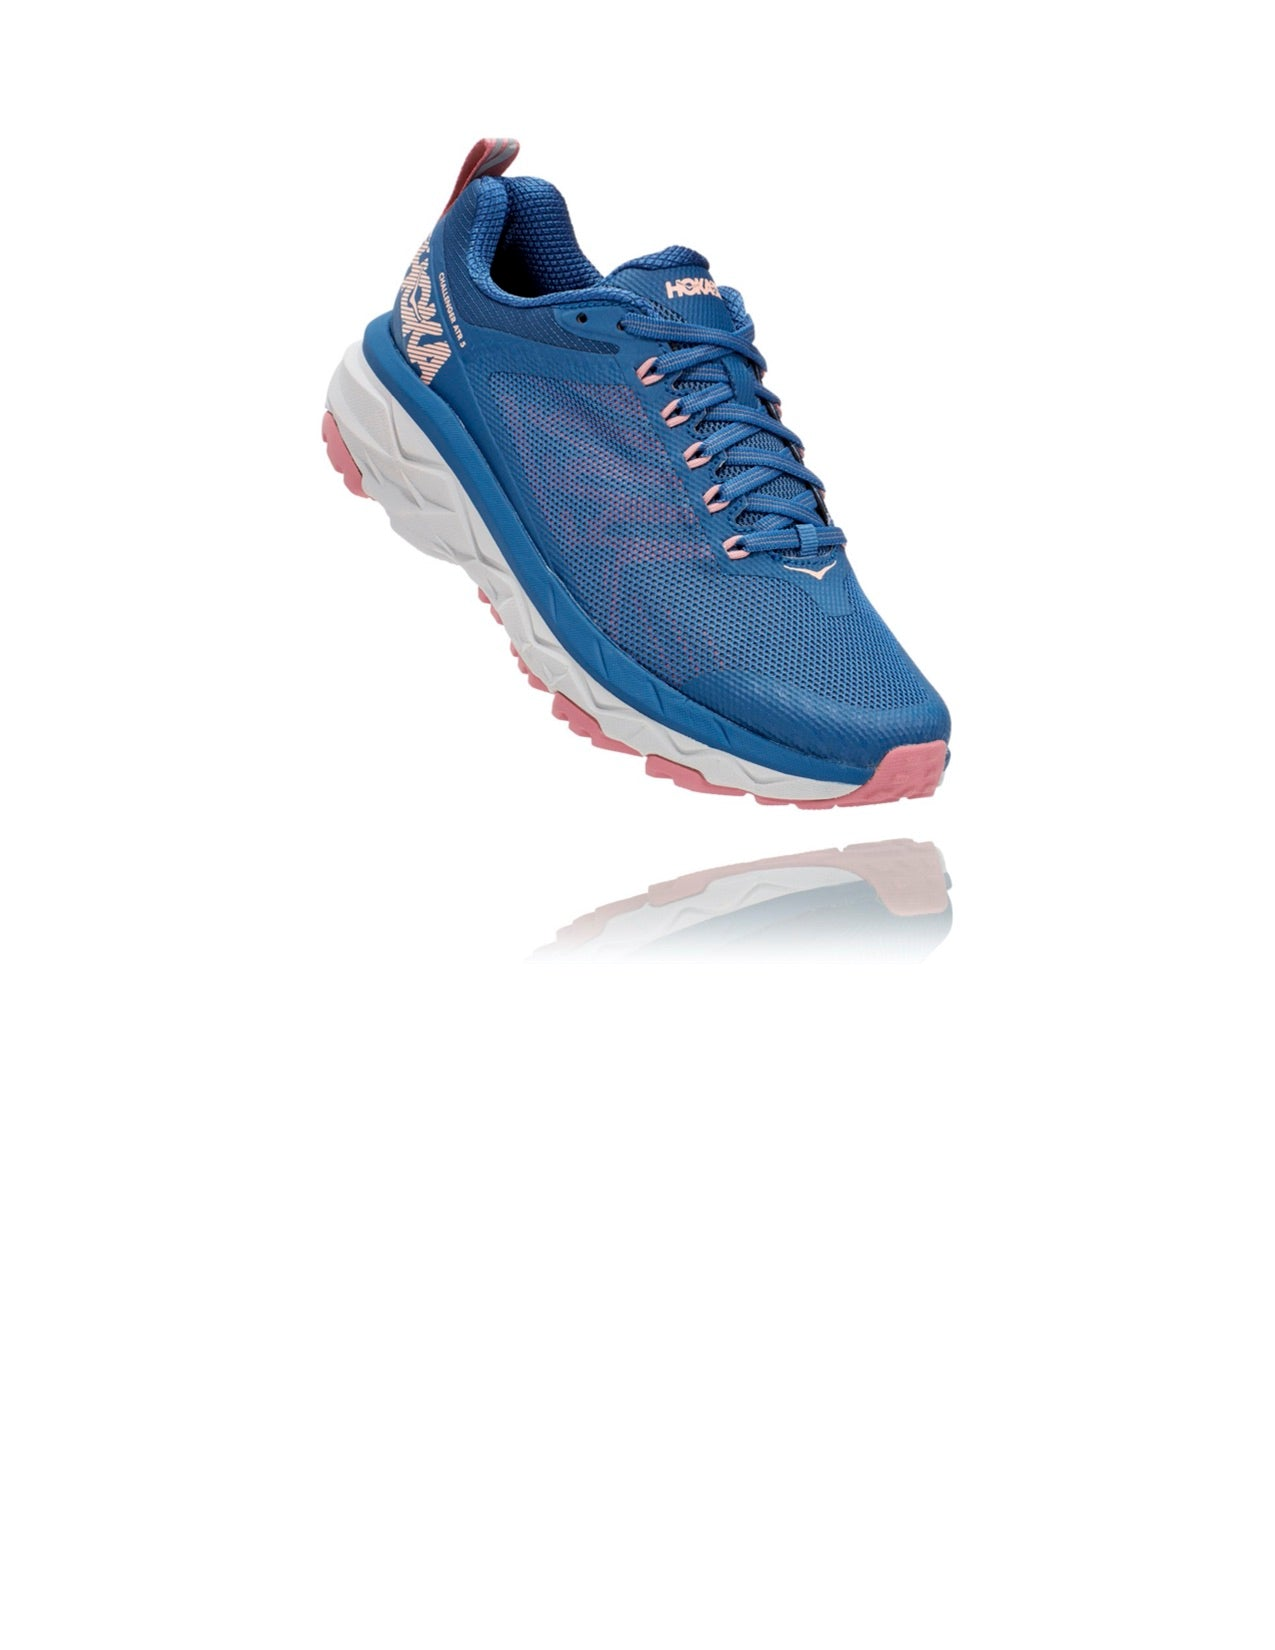 Women's Challenger ATR 5 (DBCB - dark blue/cameo brown)